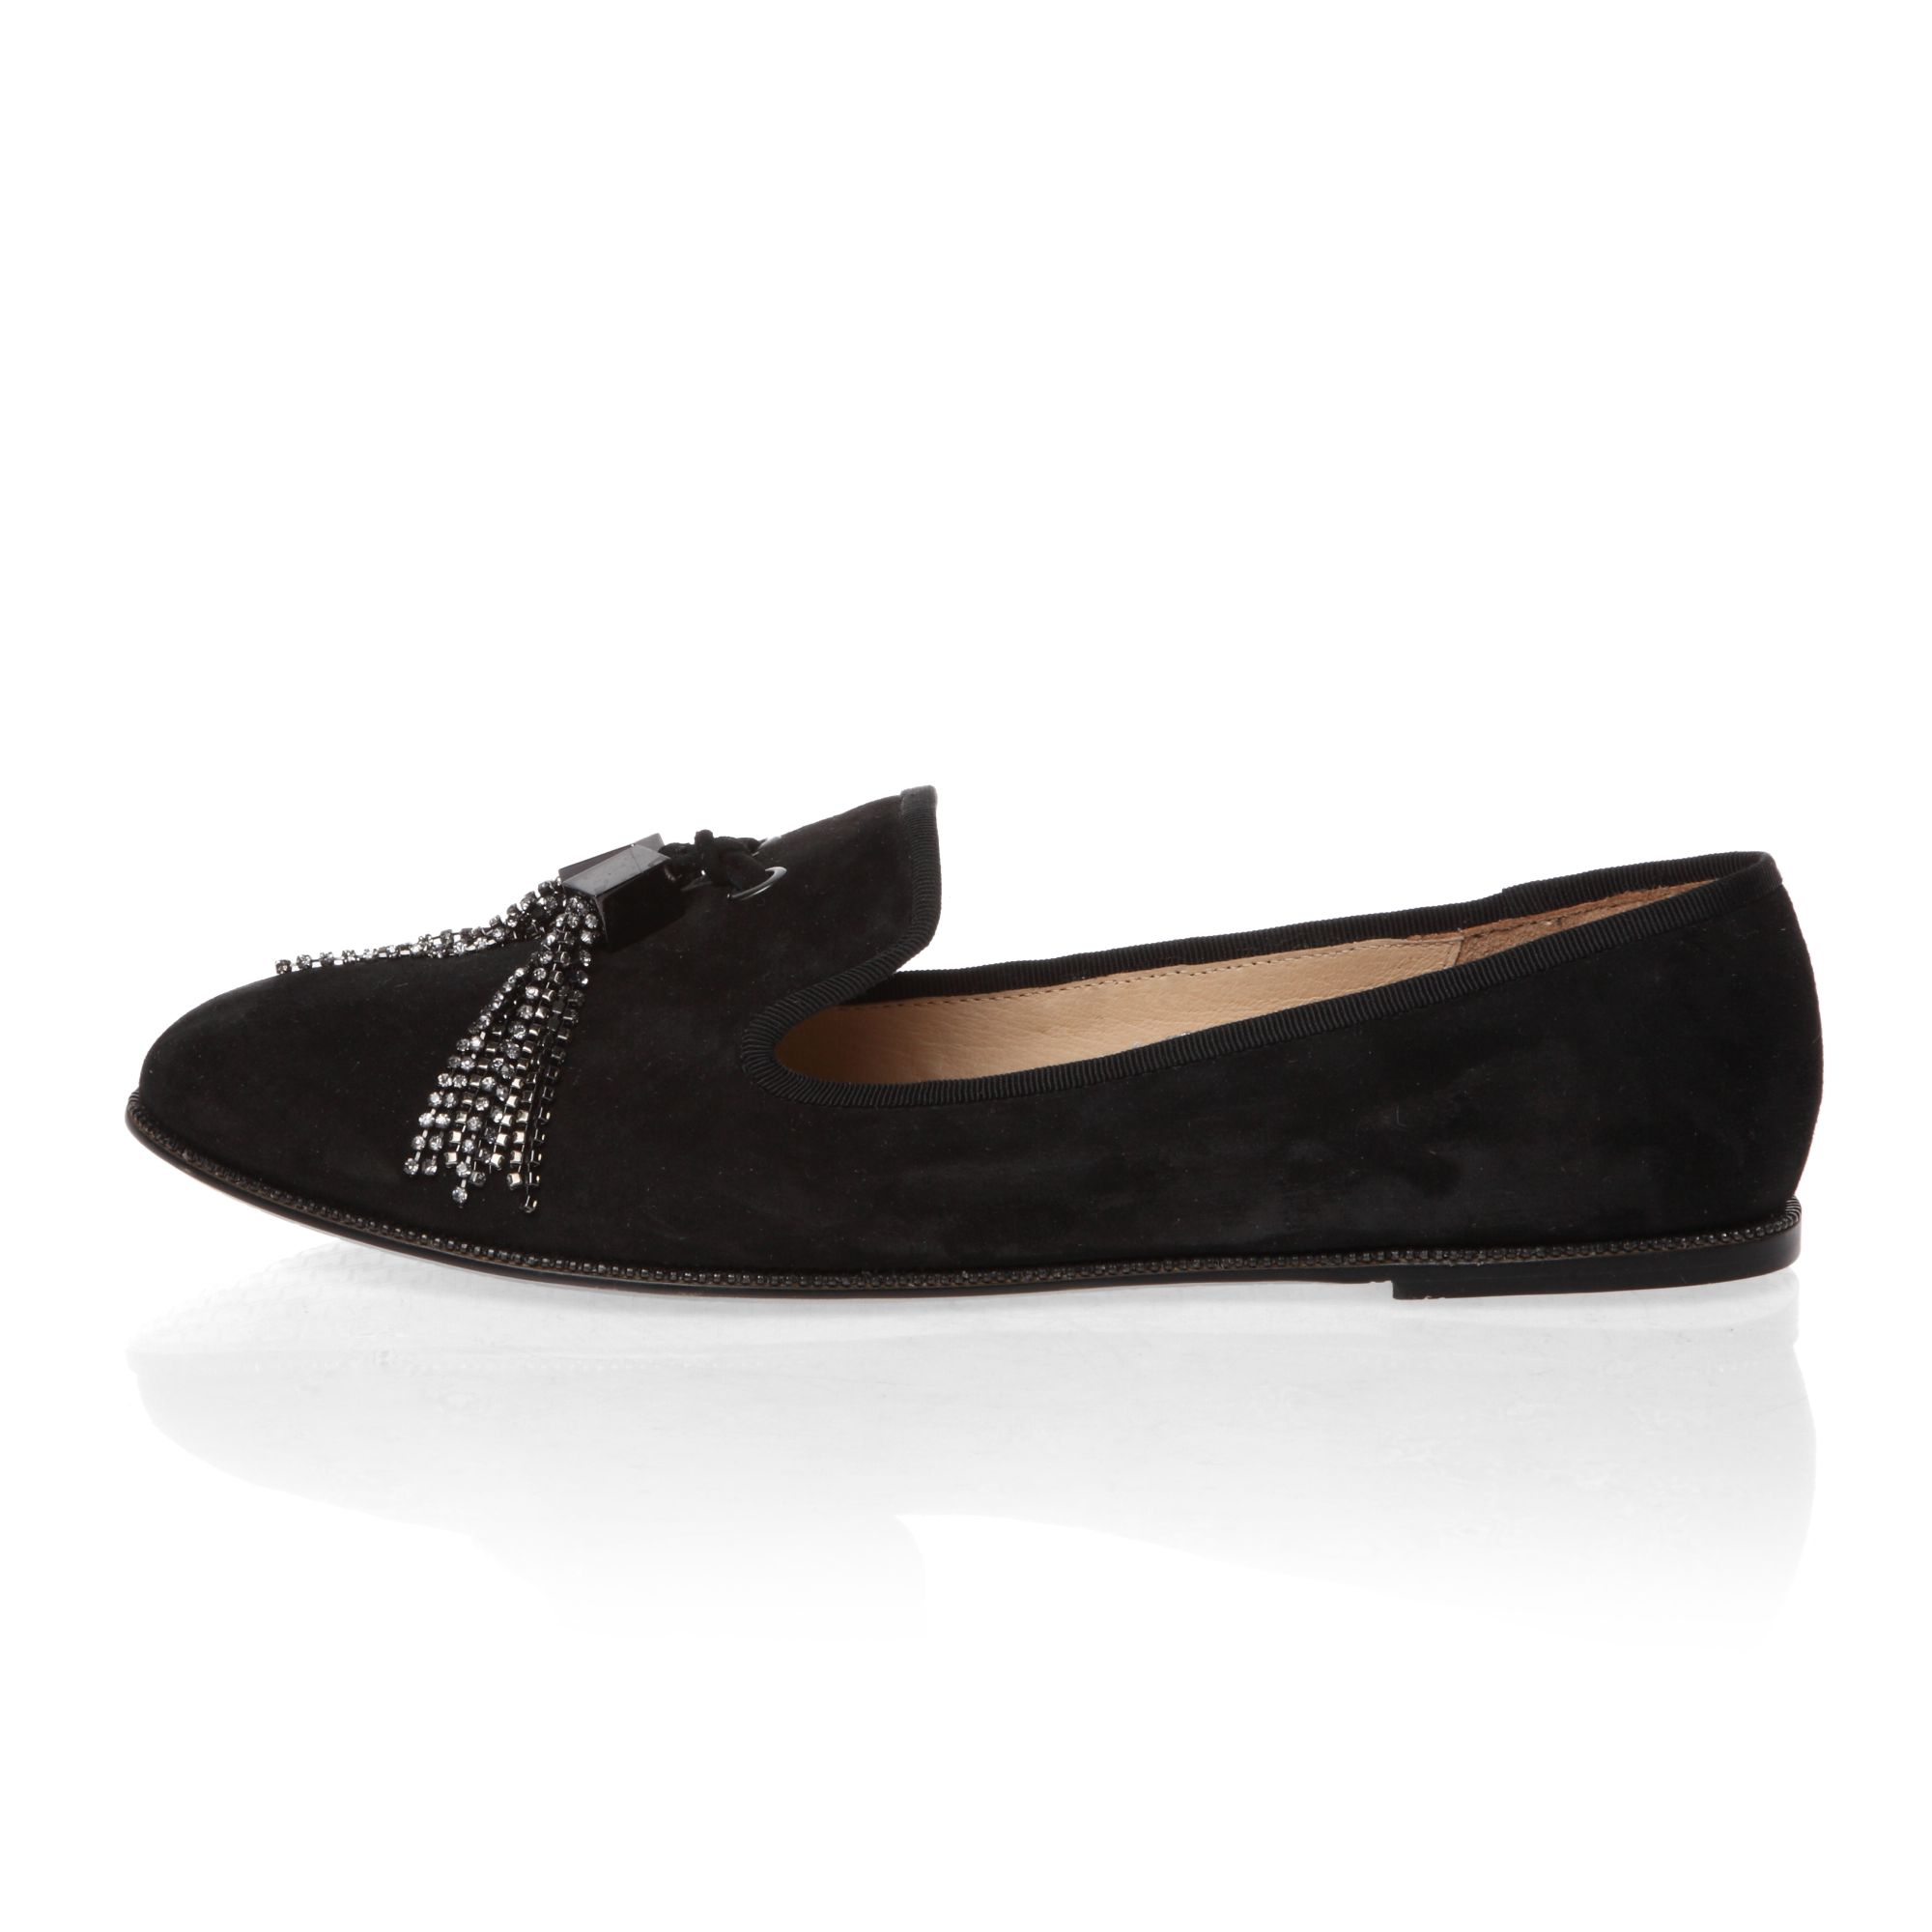 Diamonte tassel loafer shoes